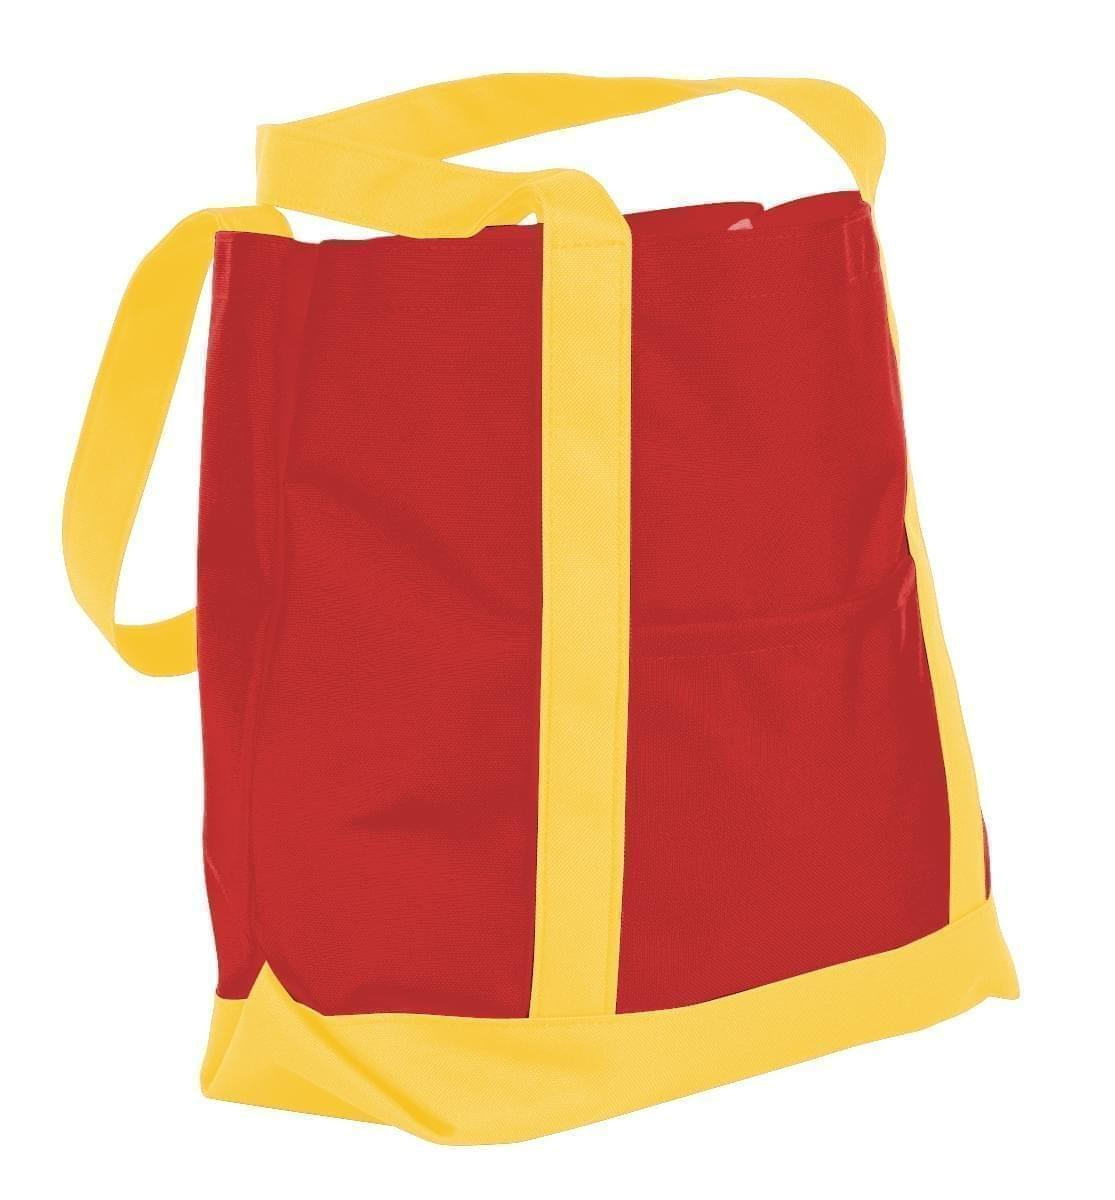 USA Made Canvas Fashion Tote Bags, Red-Gold, XAACL1UAEQ